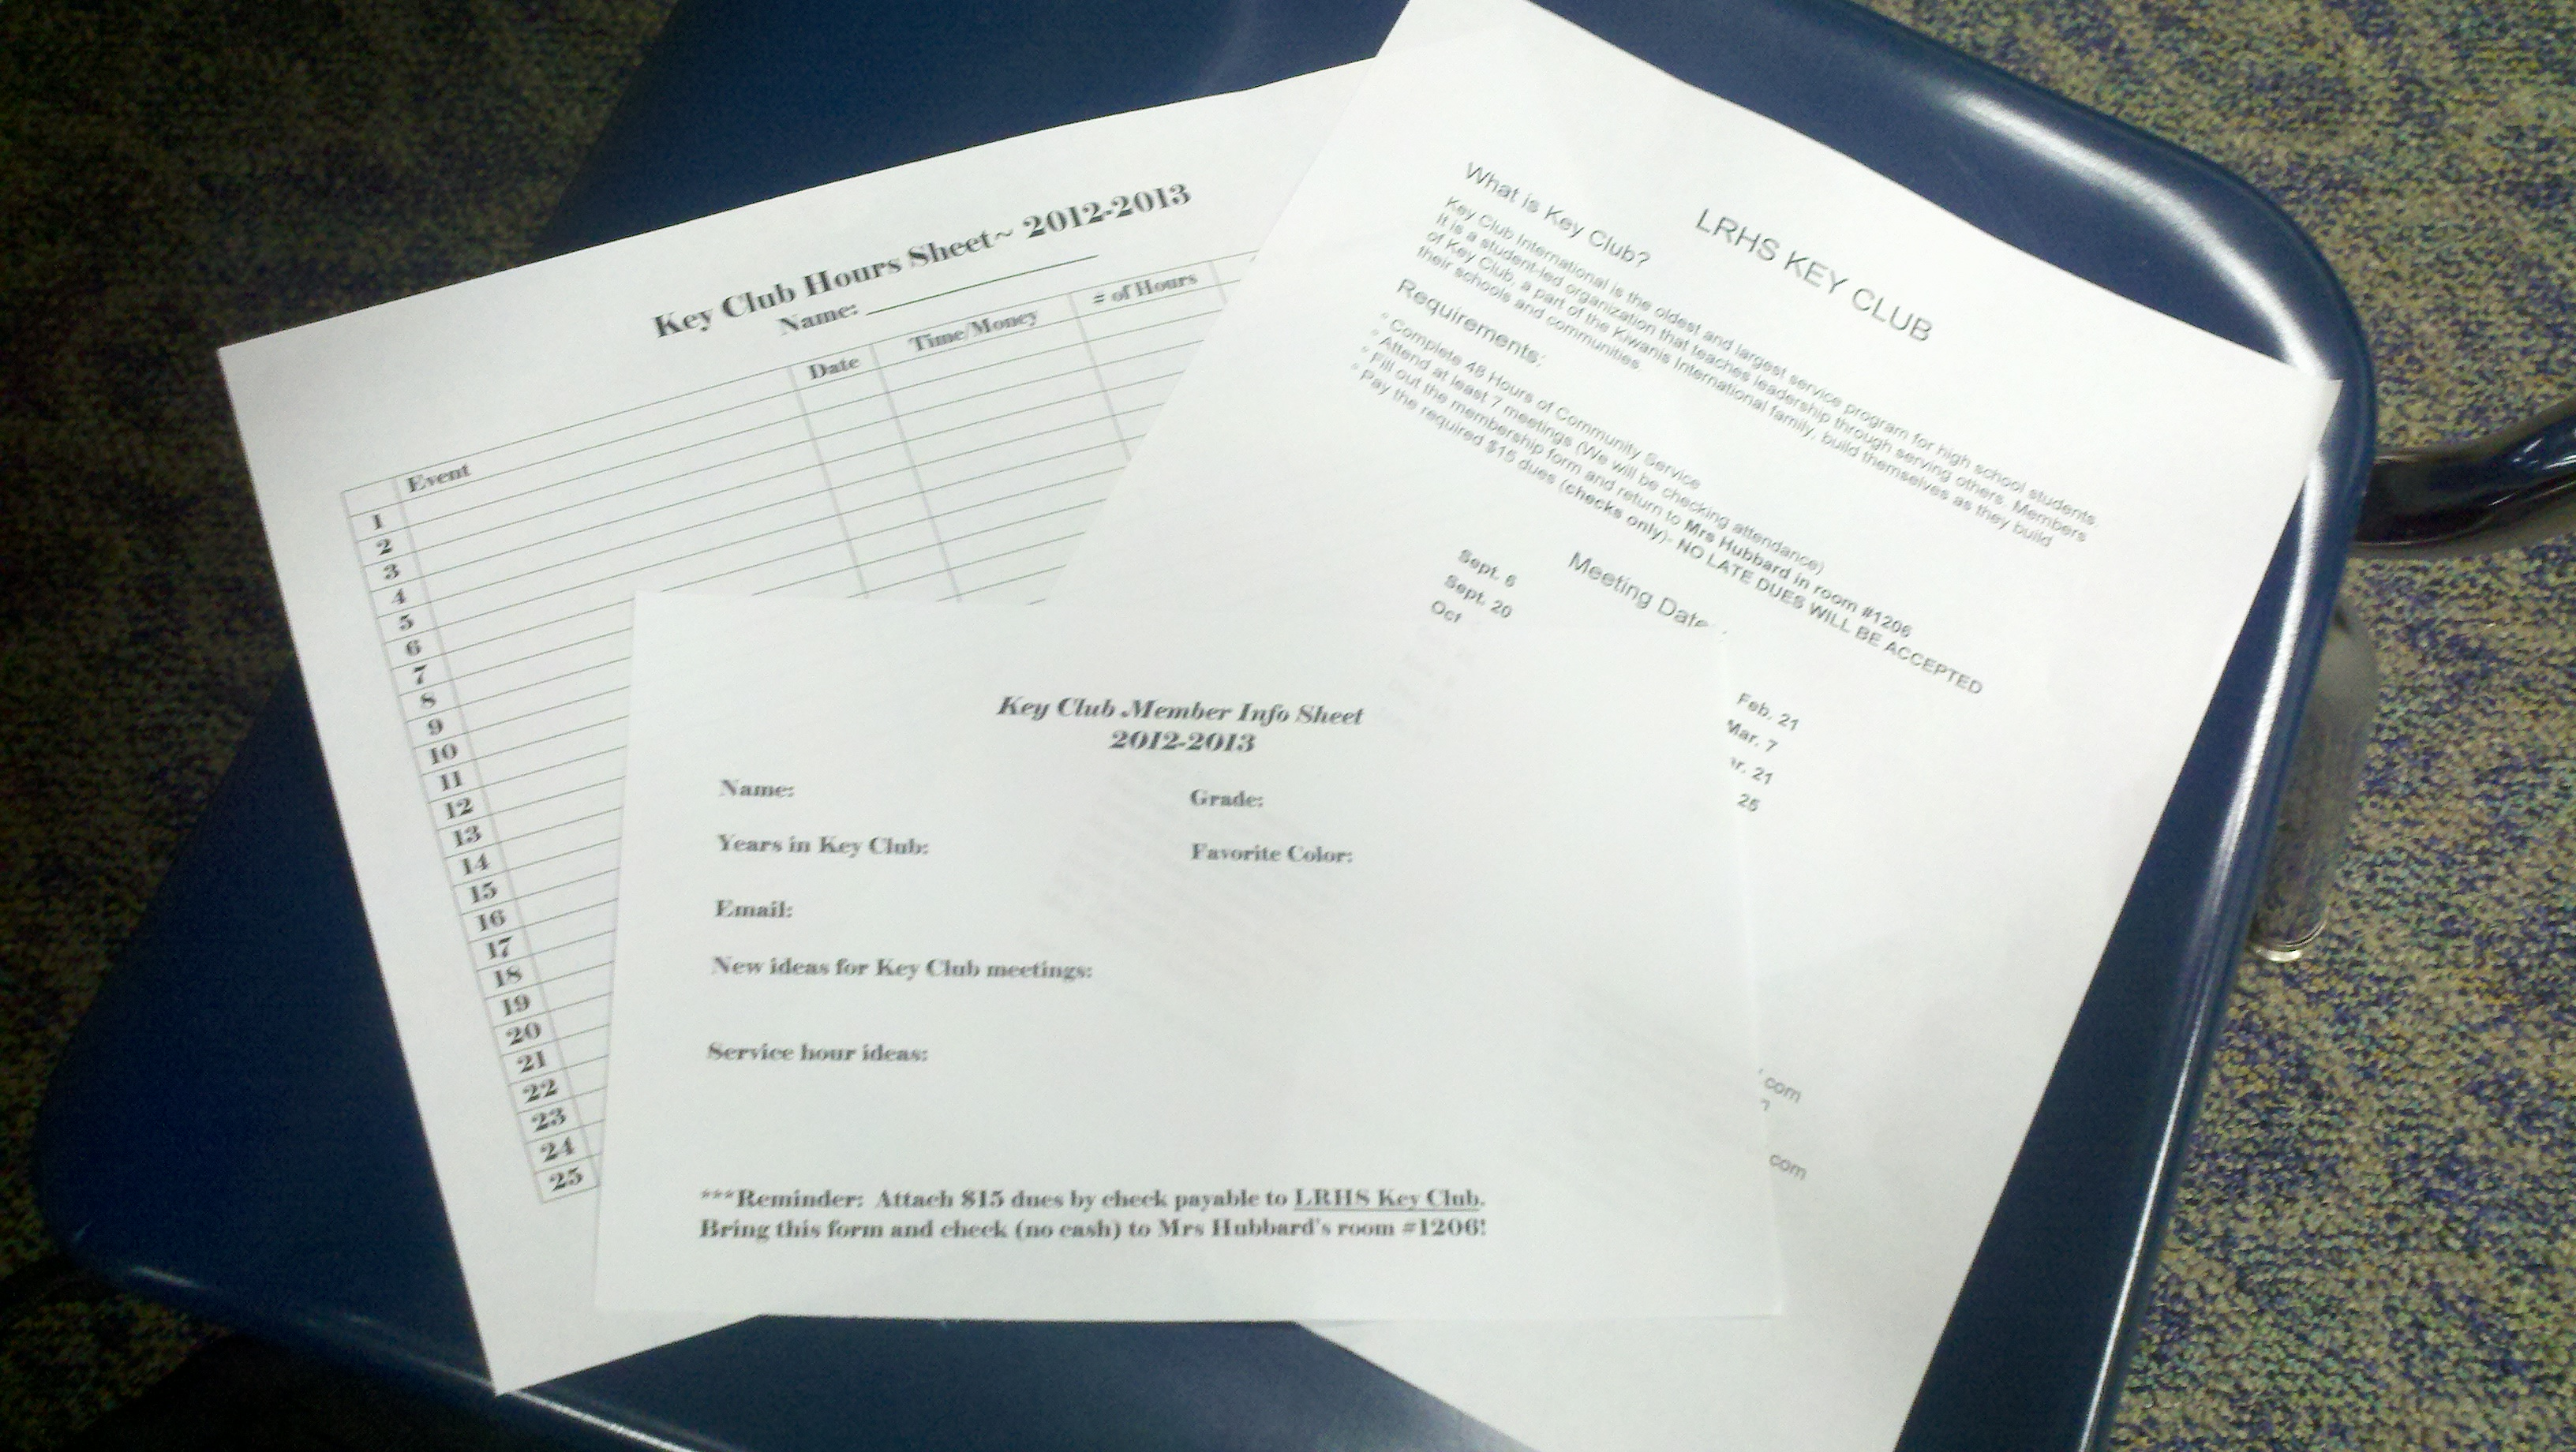 Students wishing to join Key Club received many forms, including an hours sheet and an information sheet.  Key Club is a service program for high school students.